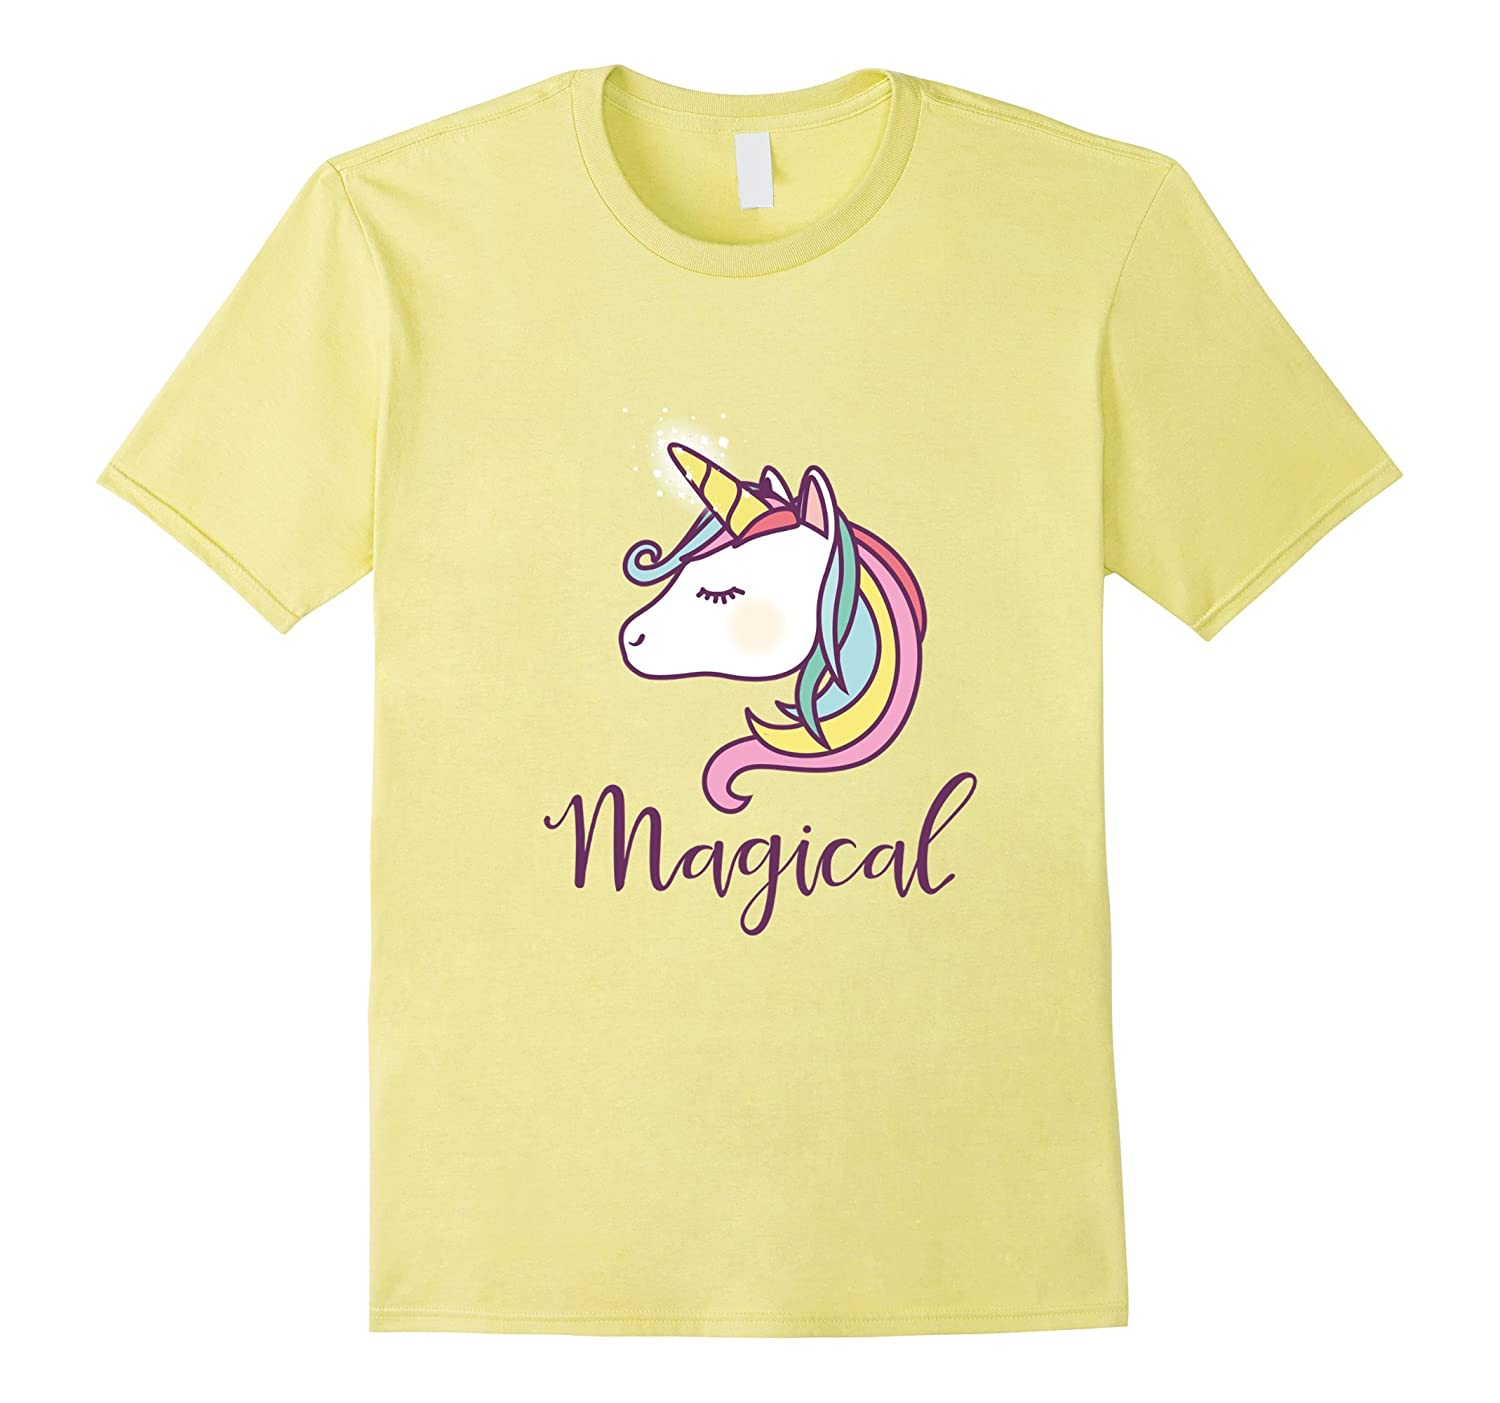 061a527b758d77 Cute Unicorn Magical Rainbow Tee Shirt for Girl Women Kid-ANZ ...